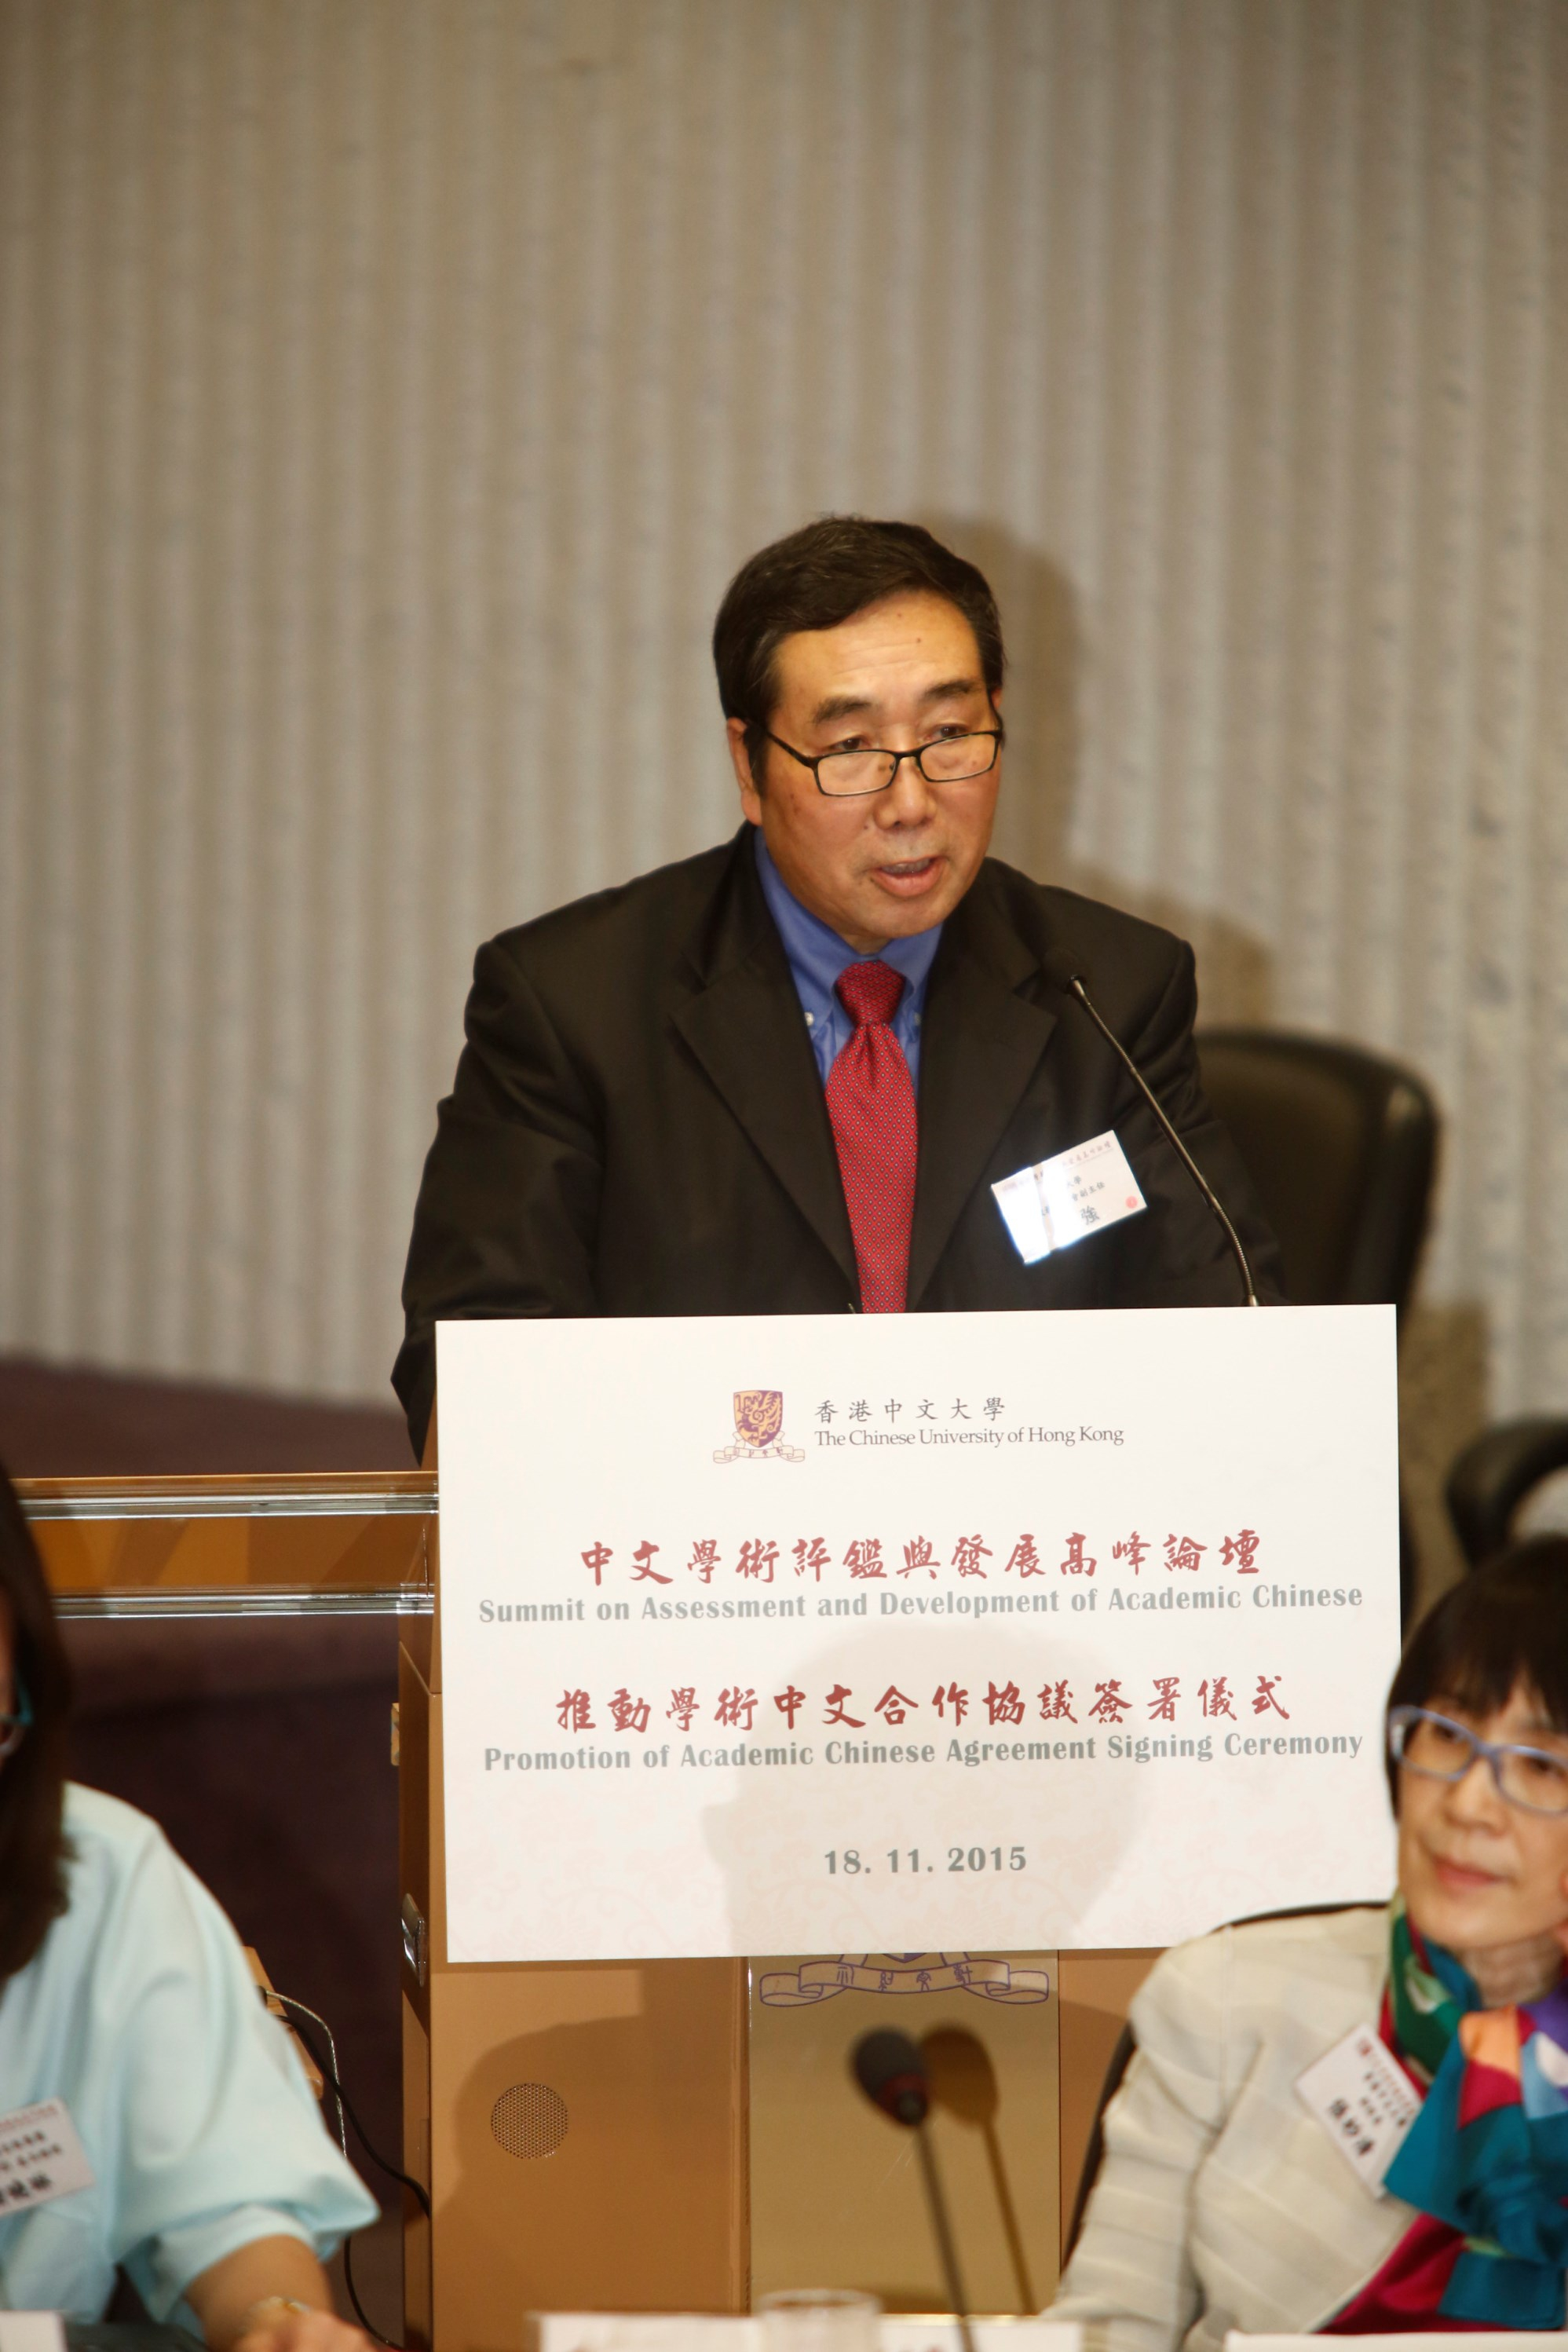 Prof. Lee Qiang, Vice Party Secretary of Peking University, one of the initiating universities, delivers a speech.